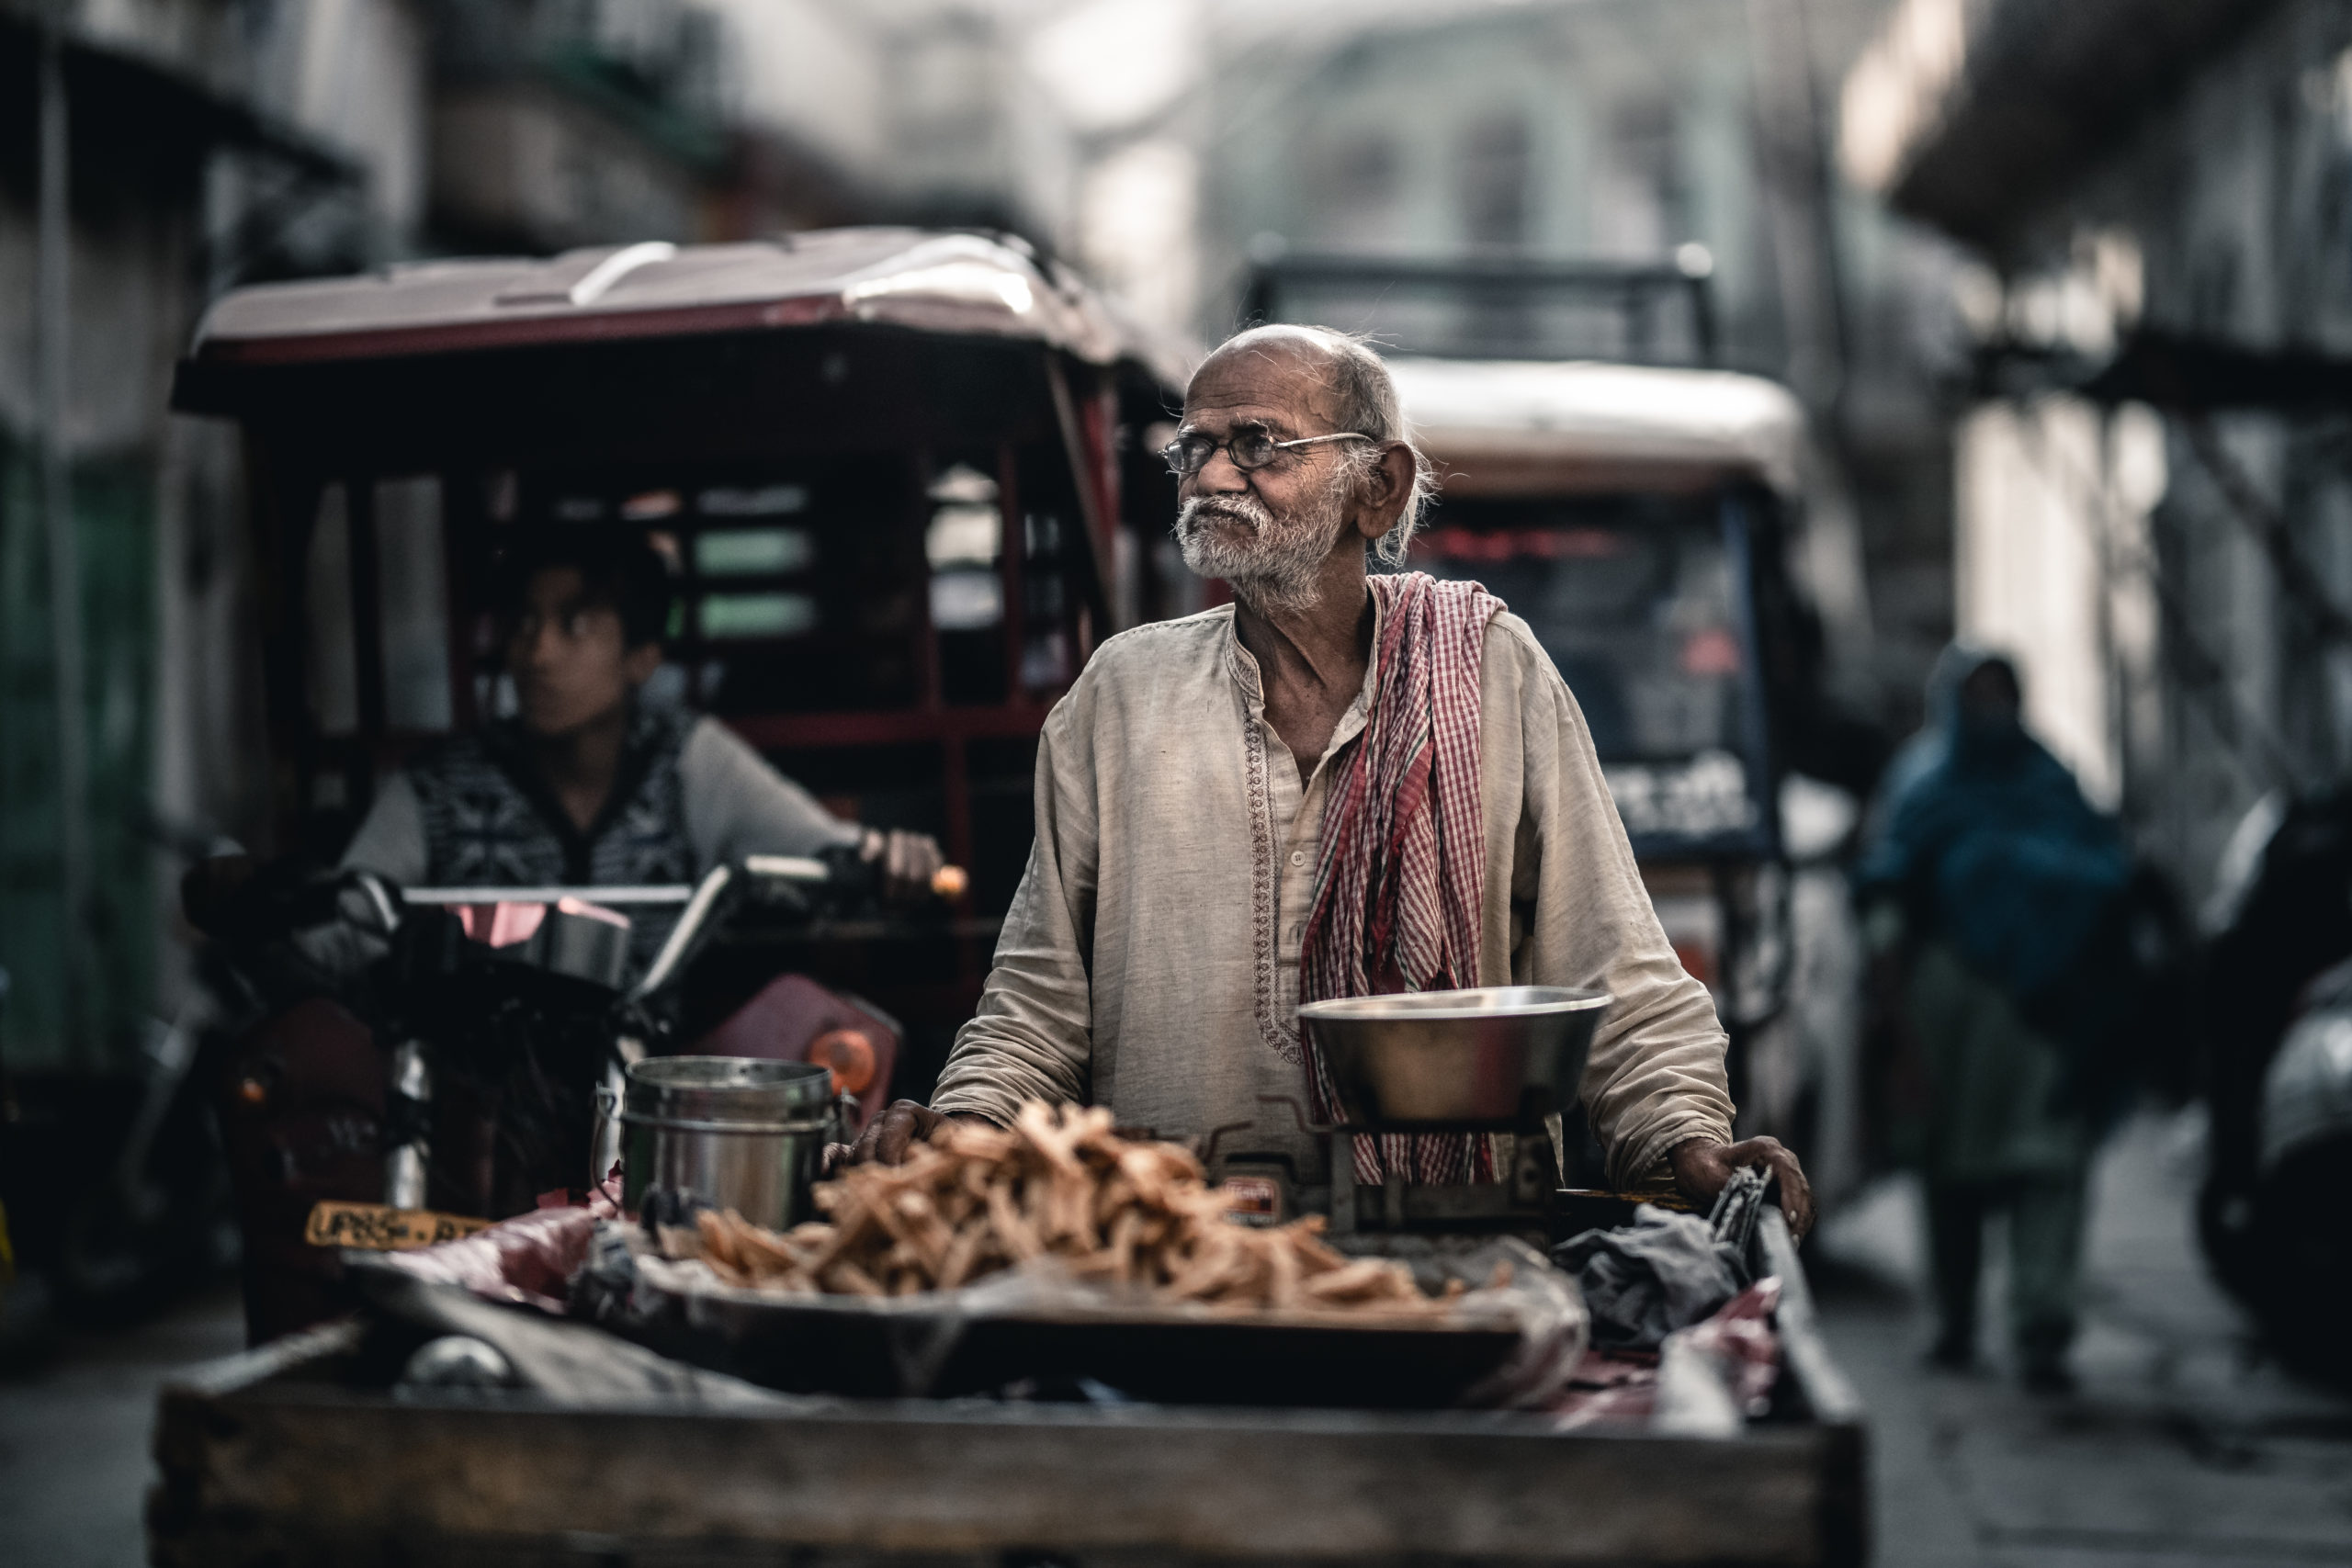 Portrait-street photography of a rickshaw driver walking in the streets of Mathura, India